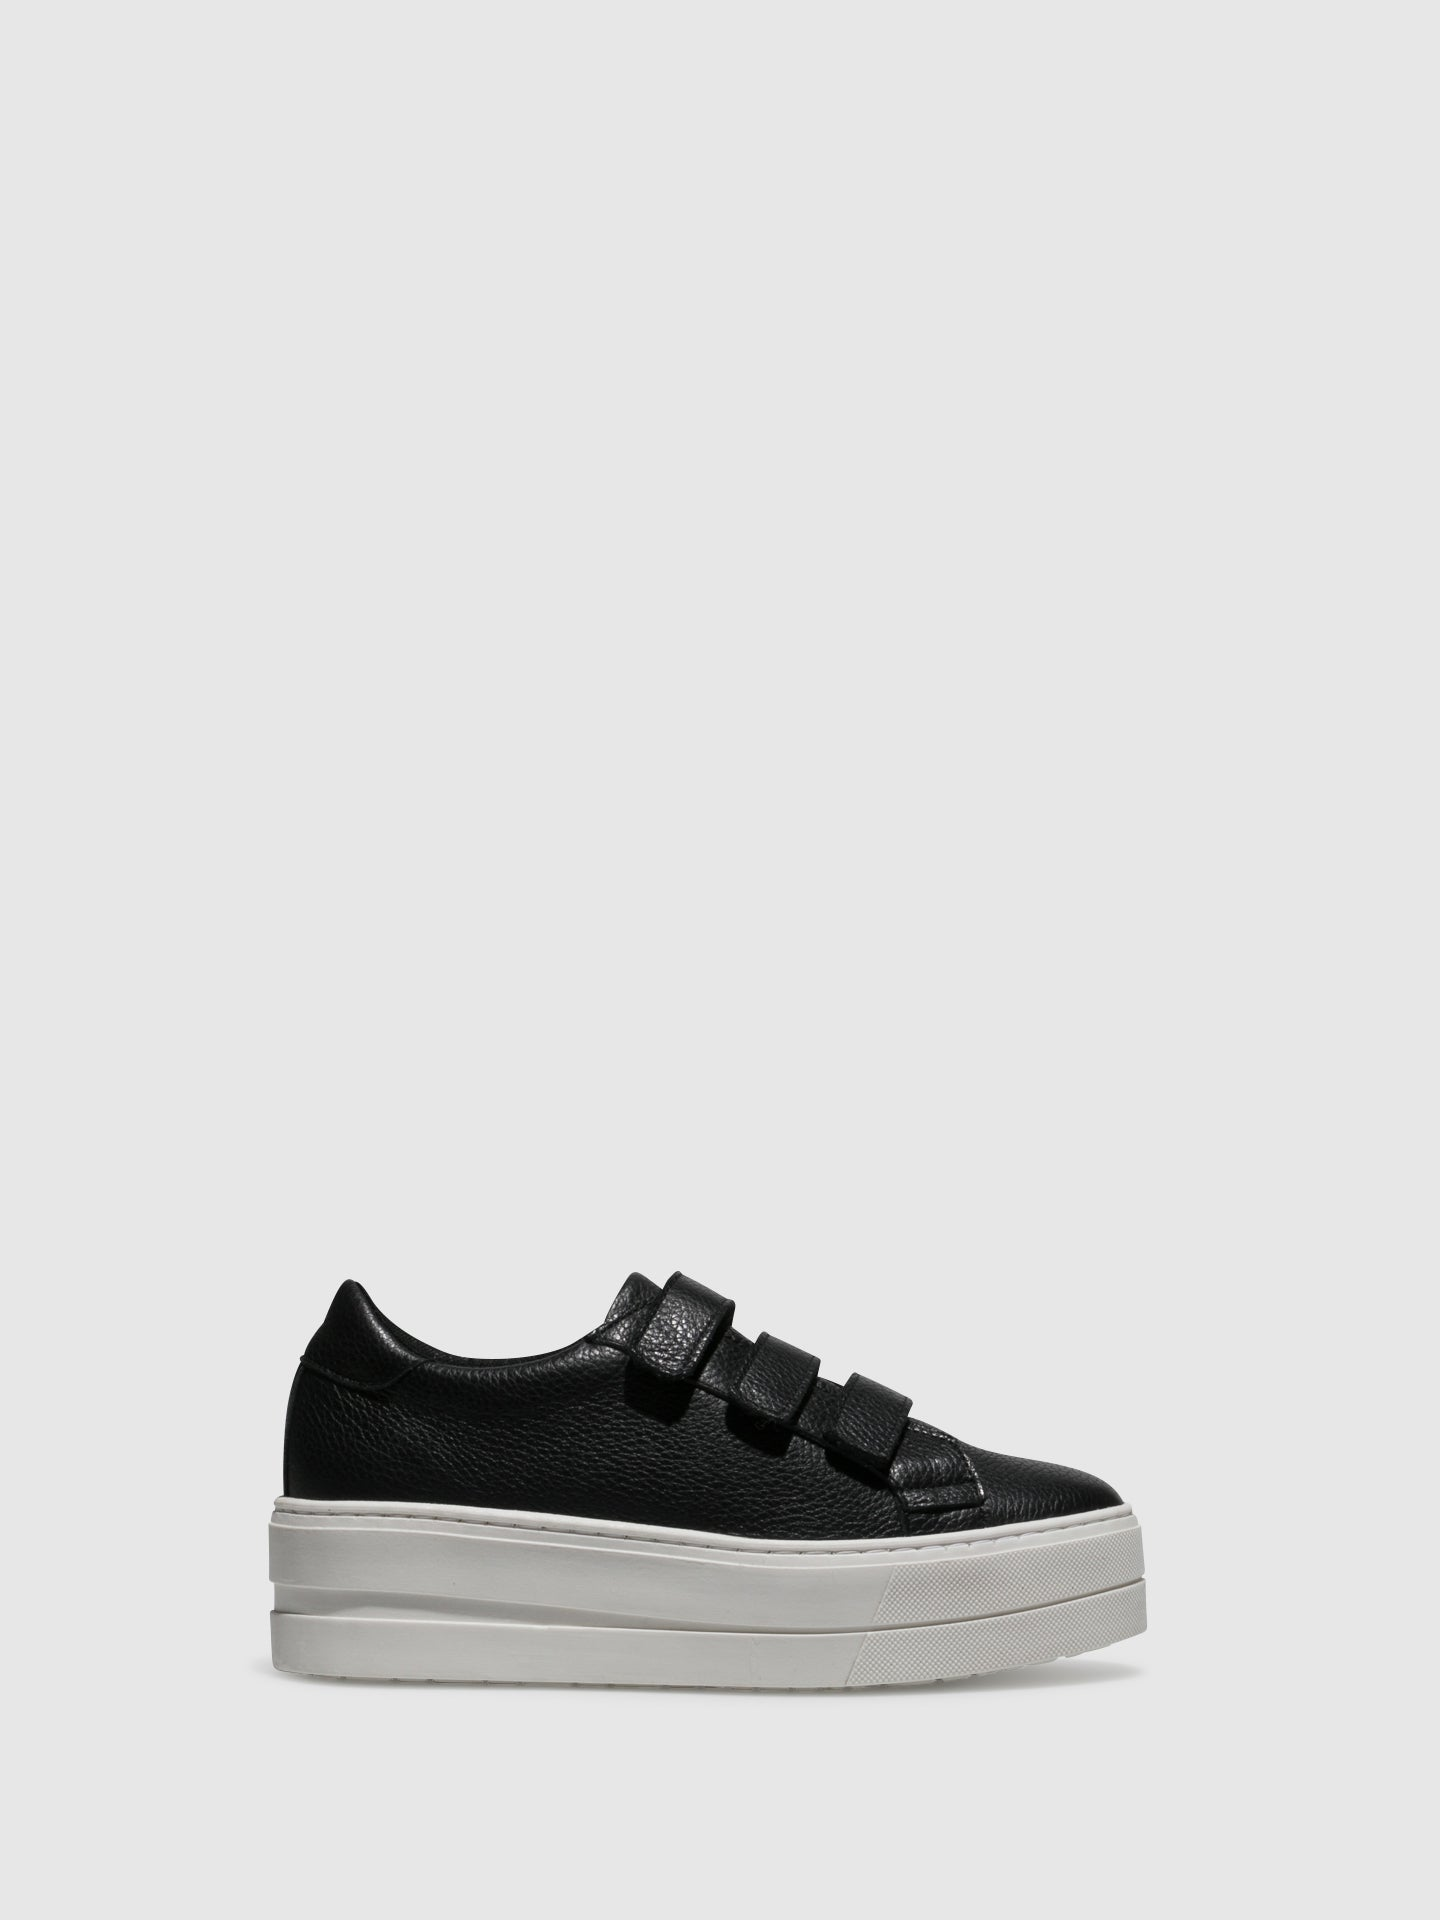 Bos&Co Black Velcro Trainers